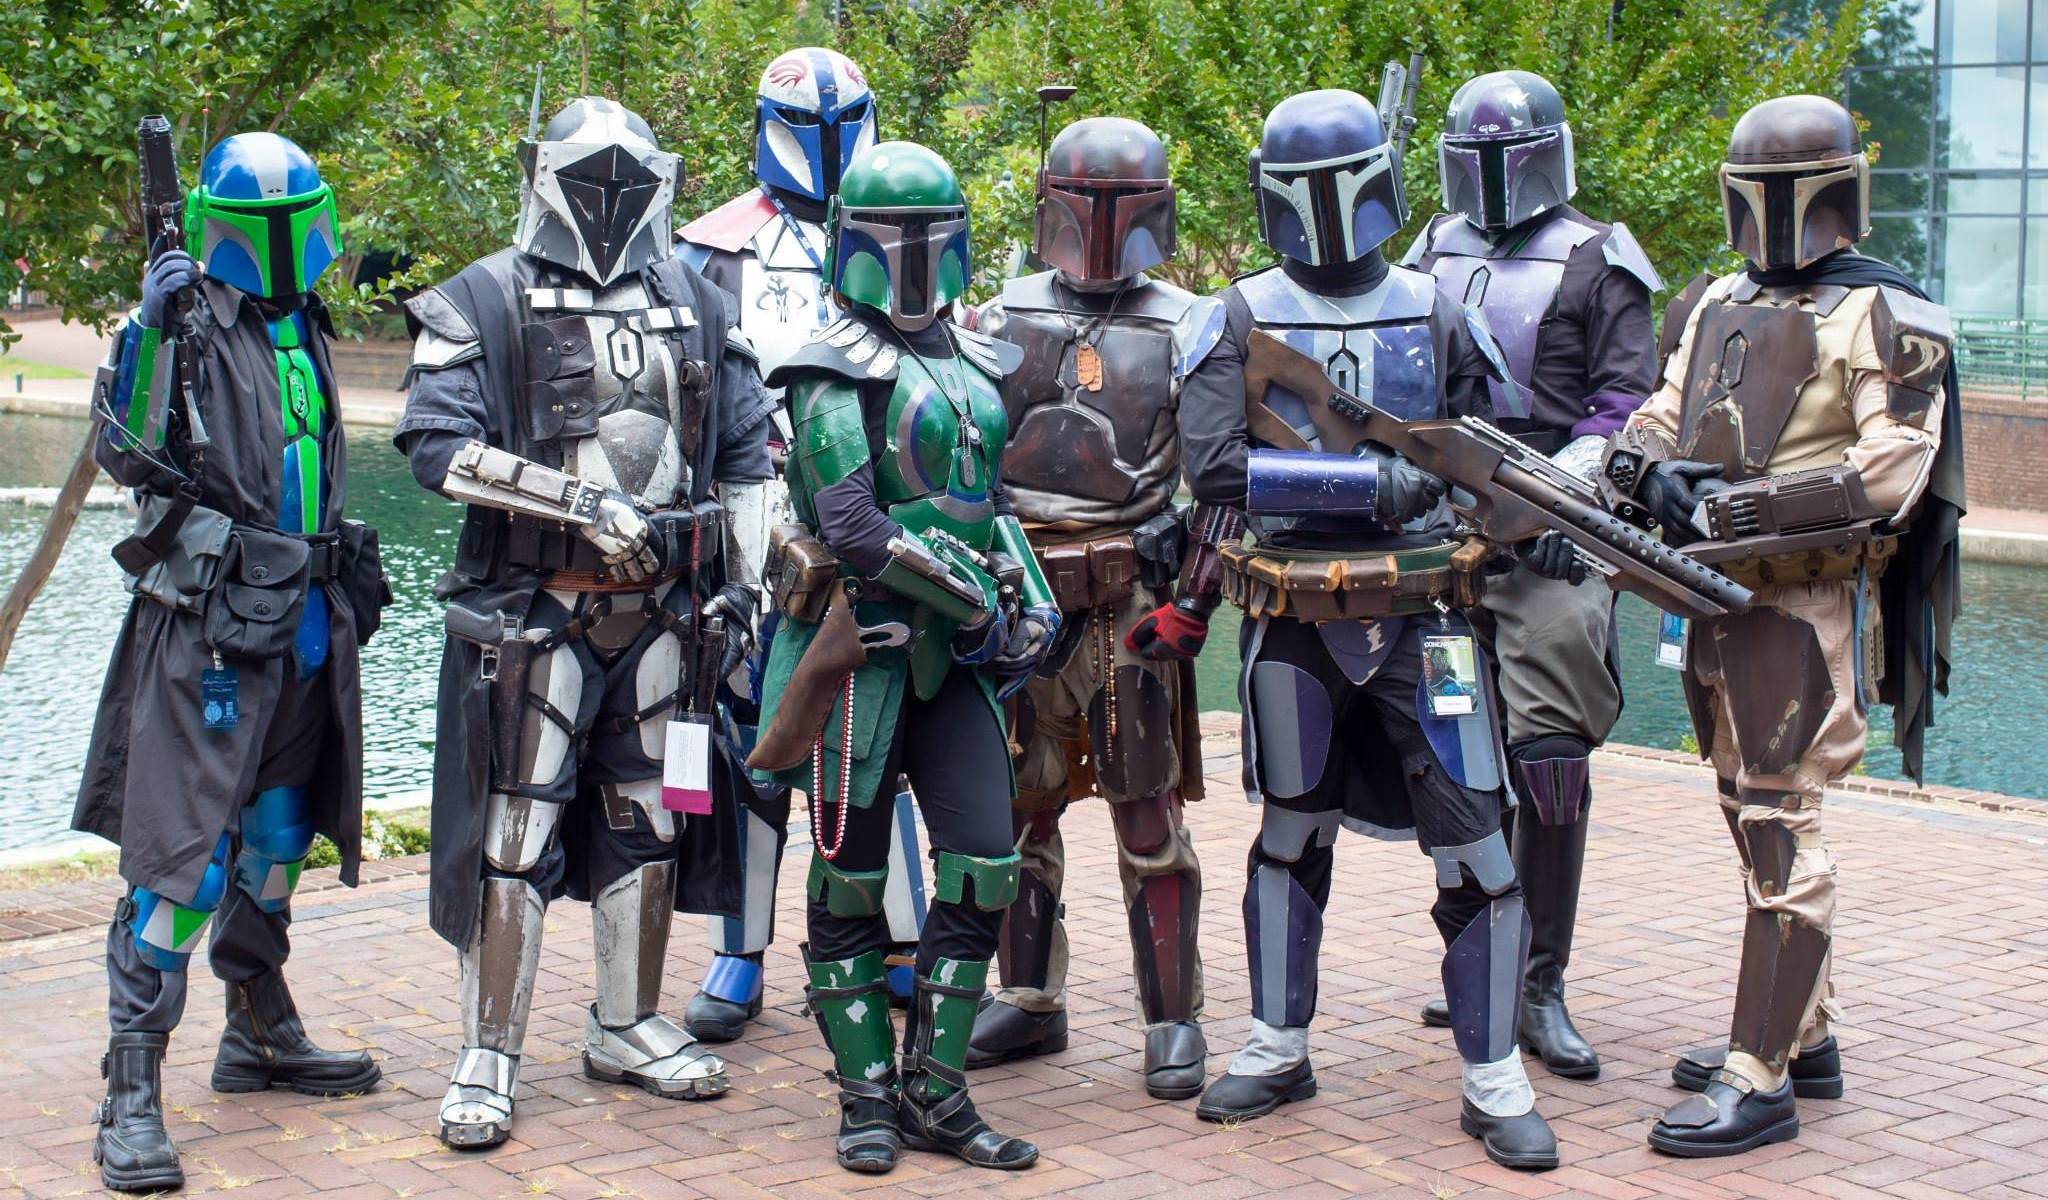 The Mandalorian Helmet : mandalorian mysteries crafting the armor ~ Pogadajmy.info Styles, Décorations et Voitures